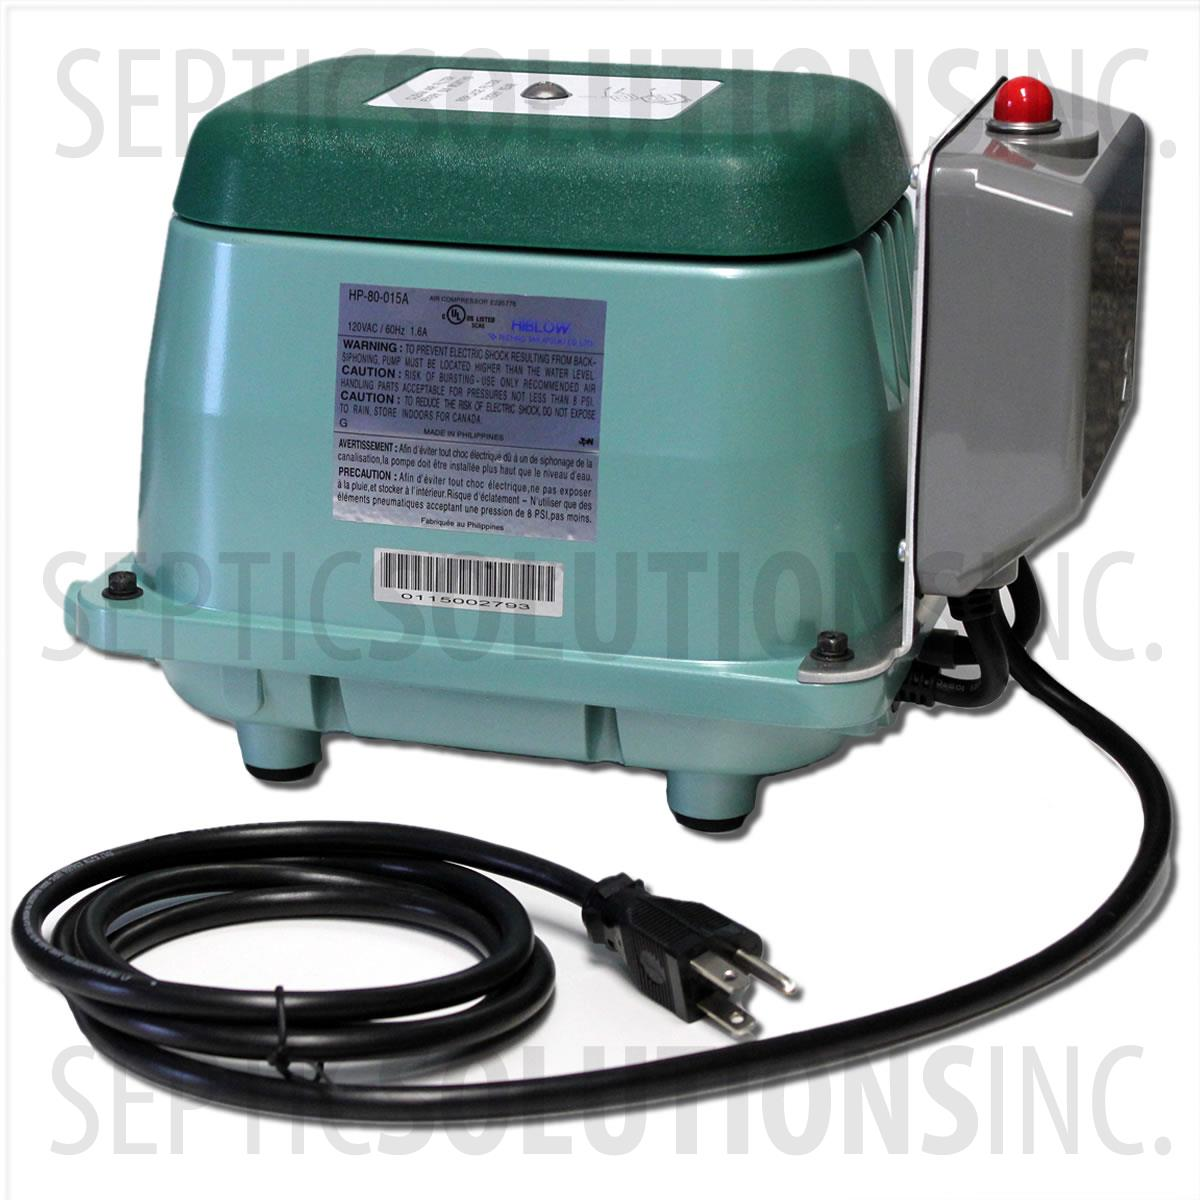 H500A_2?w=300 hoot troy air aerobic system air pumps and repair parts  at crackthecode.co